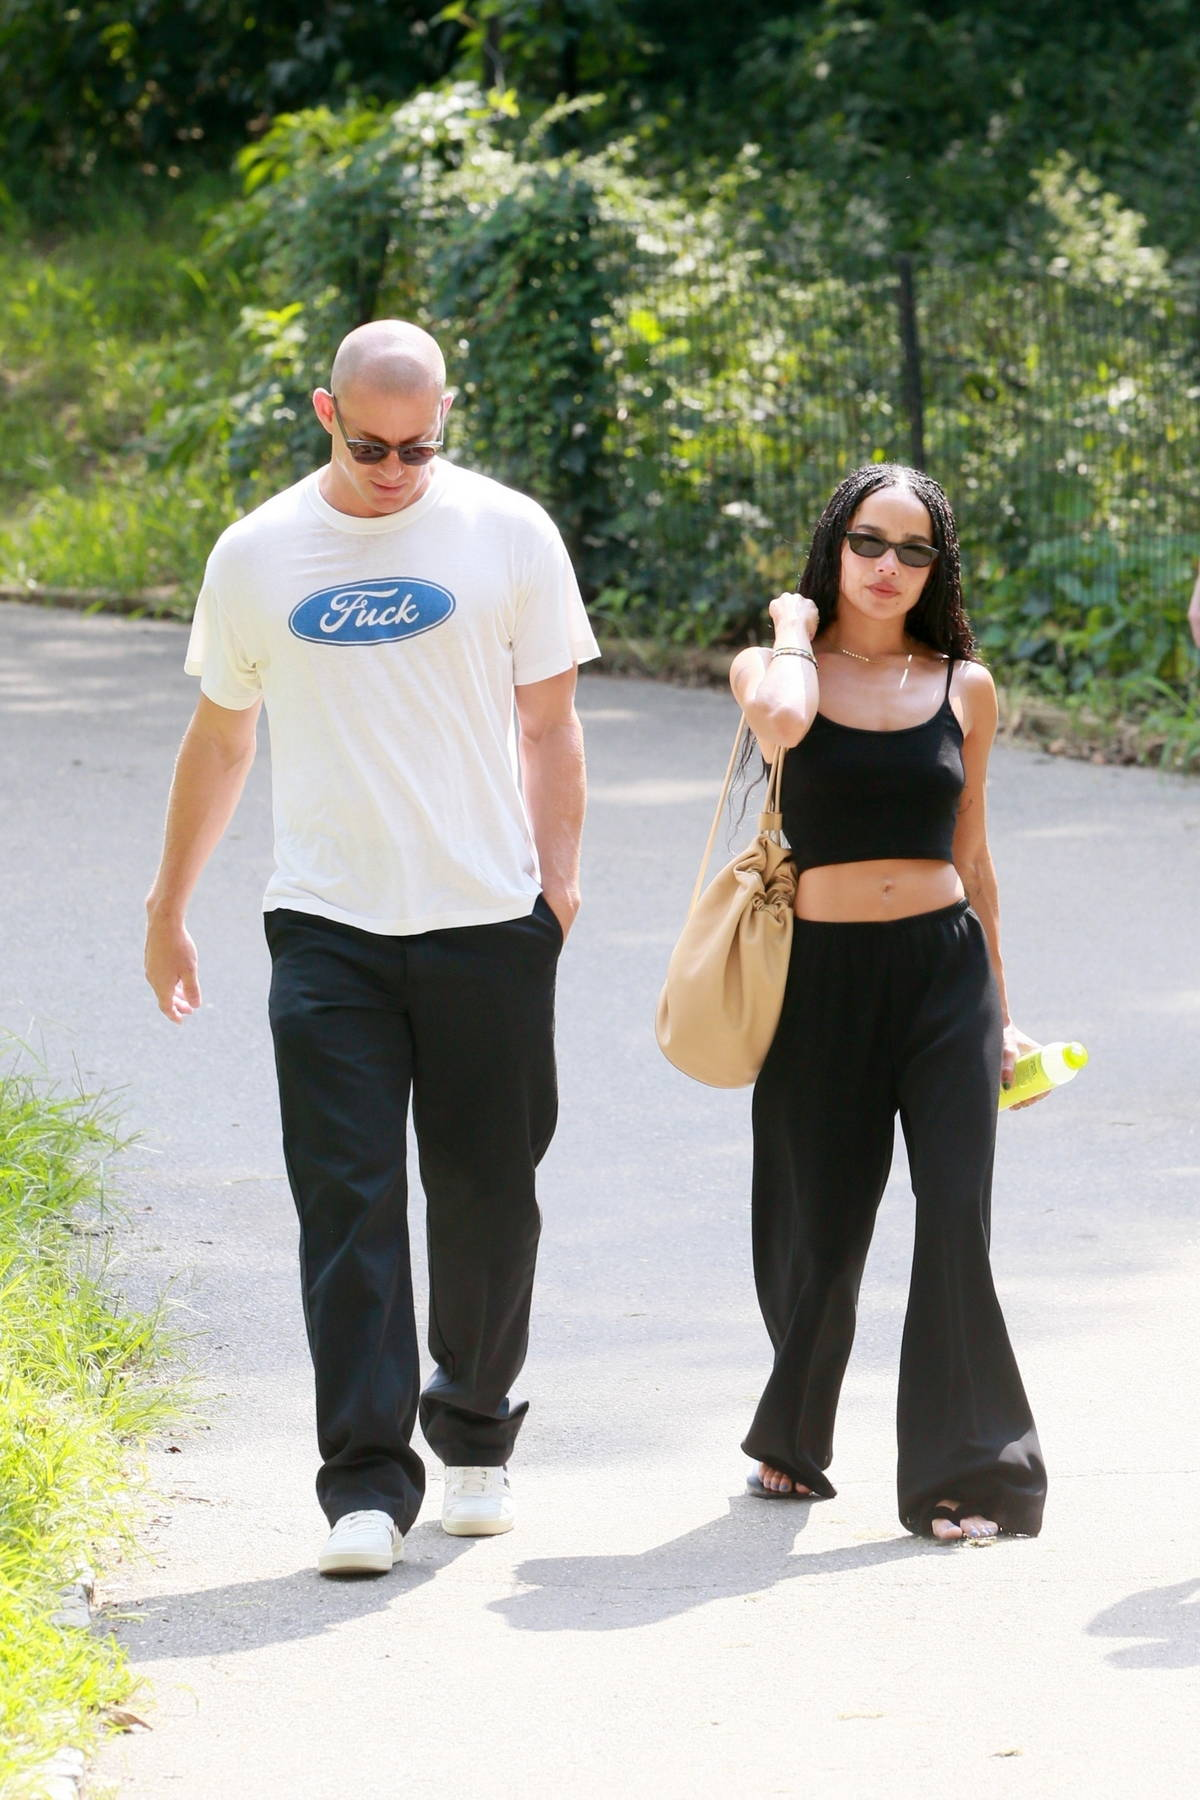 Zoe Kravitz seen taking a stroll with rumored beau Channing Tatum through Central Park in New York City